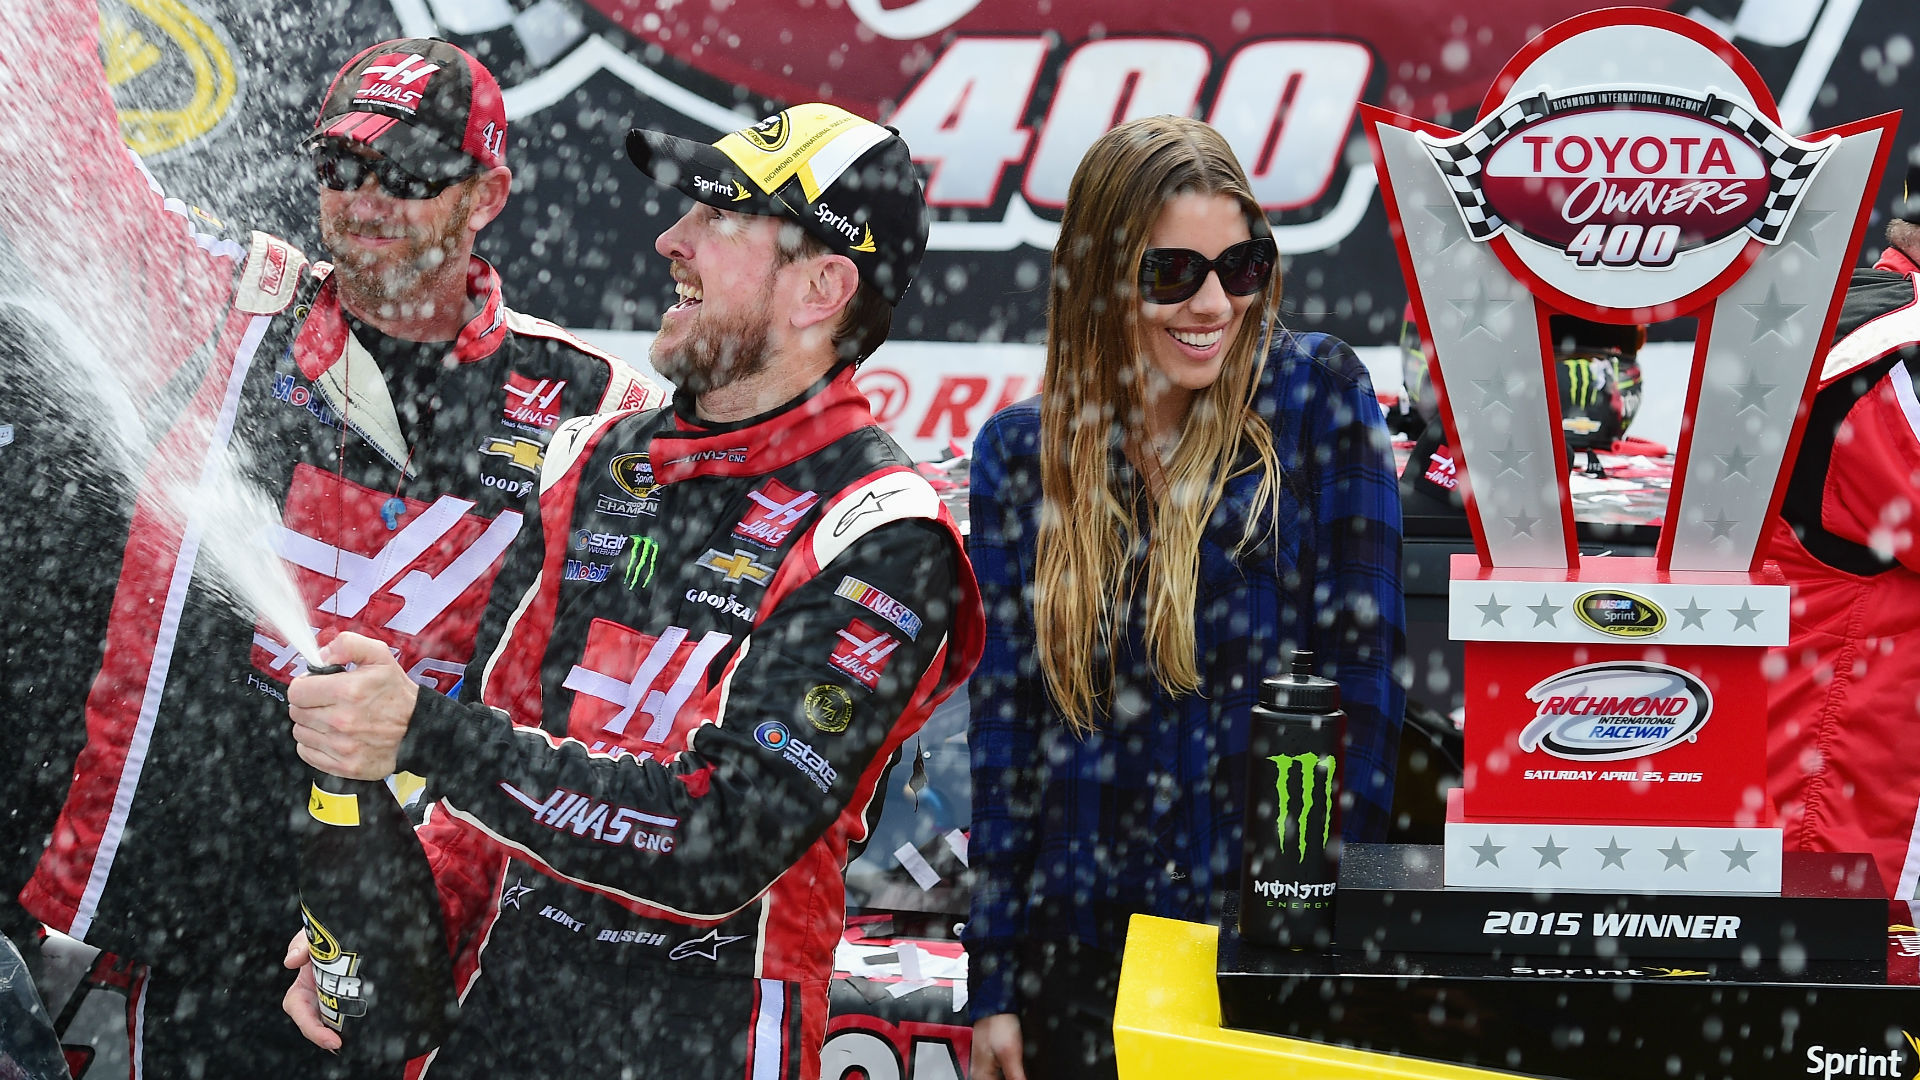 Toyota Owners 400 results: Kurt Busch gets first win of season